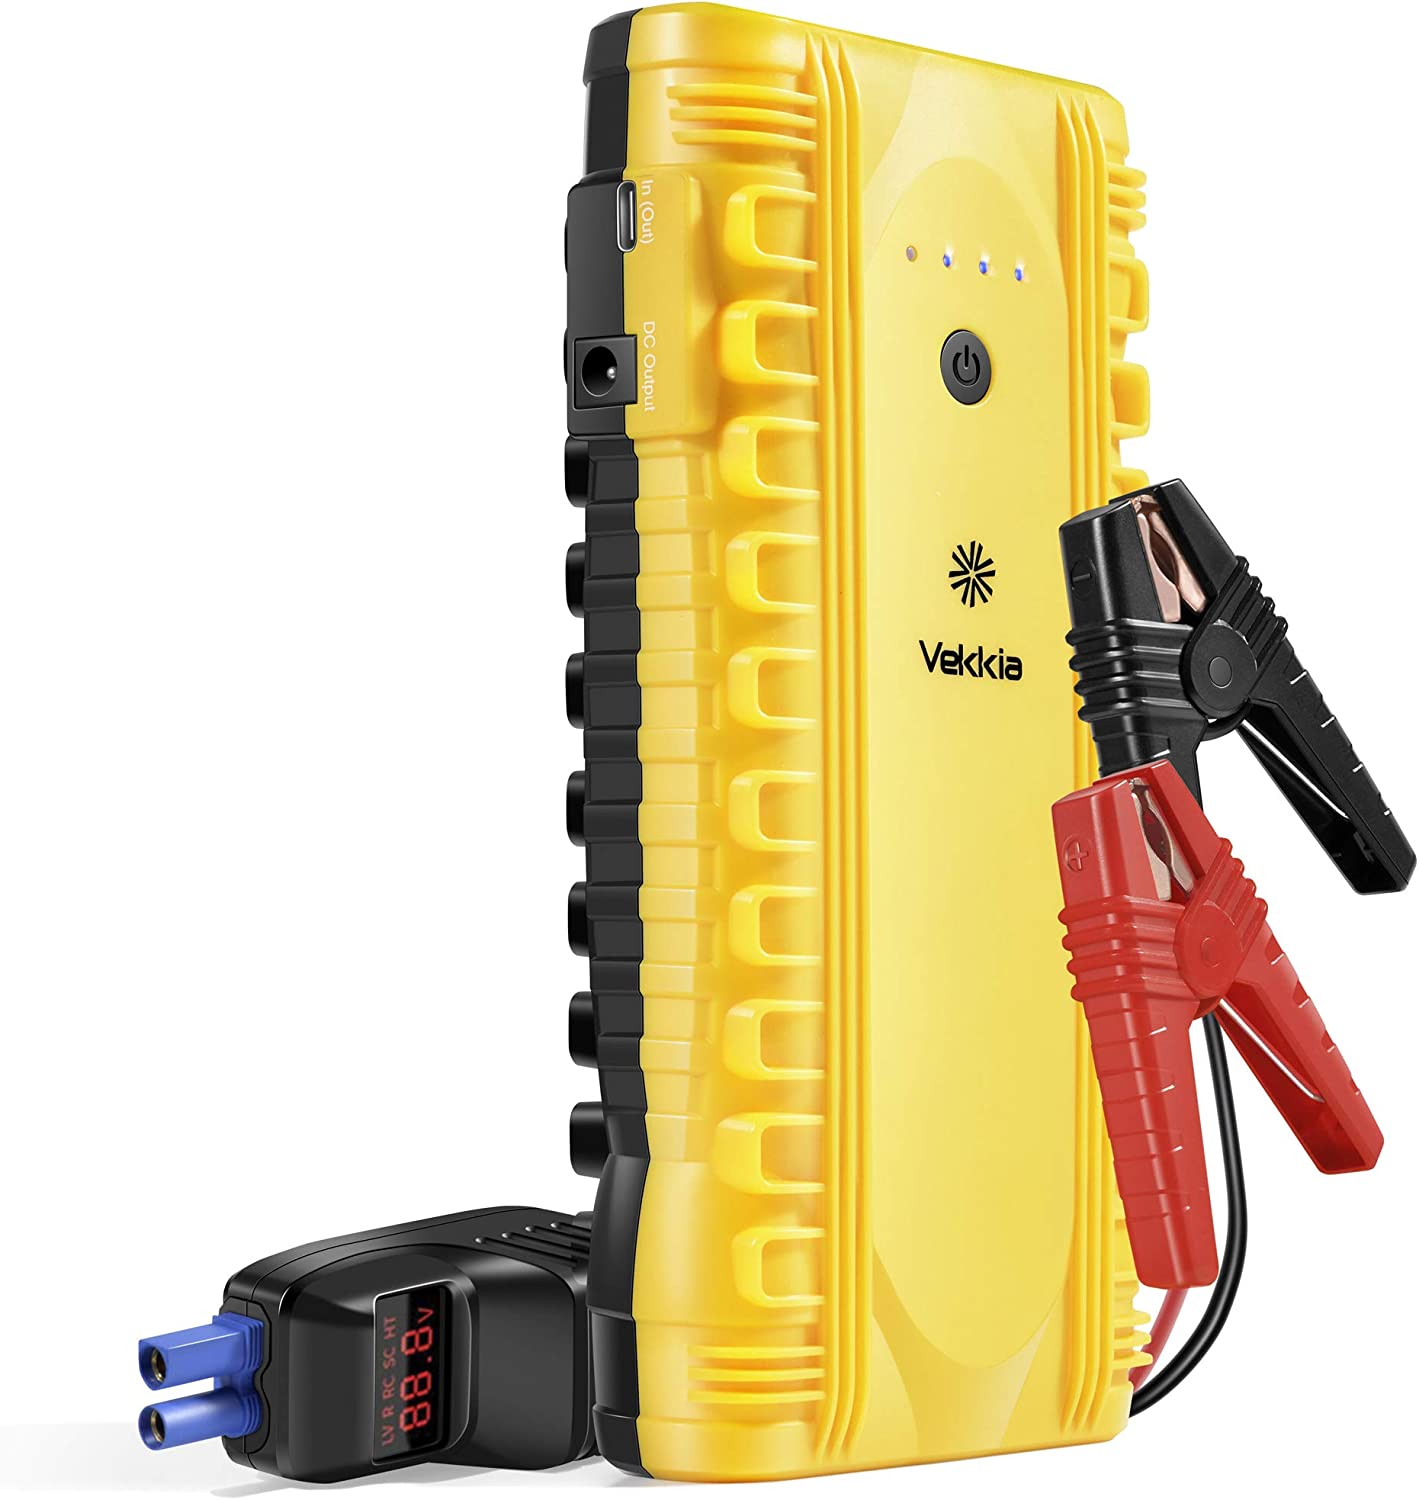 VEKKIA 1500A Peak Car Jump Starter Portable with QDSP (Up to 8.0L Gas or 6.5L Diesel Engine),12V Auto Battery Booster Power Pack with LCD Display Smart Jumper Cables, Case, QC 3.0 and LED Light